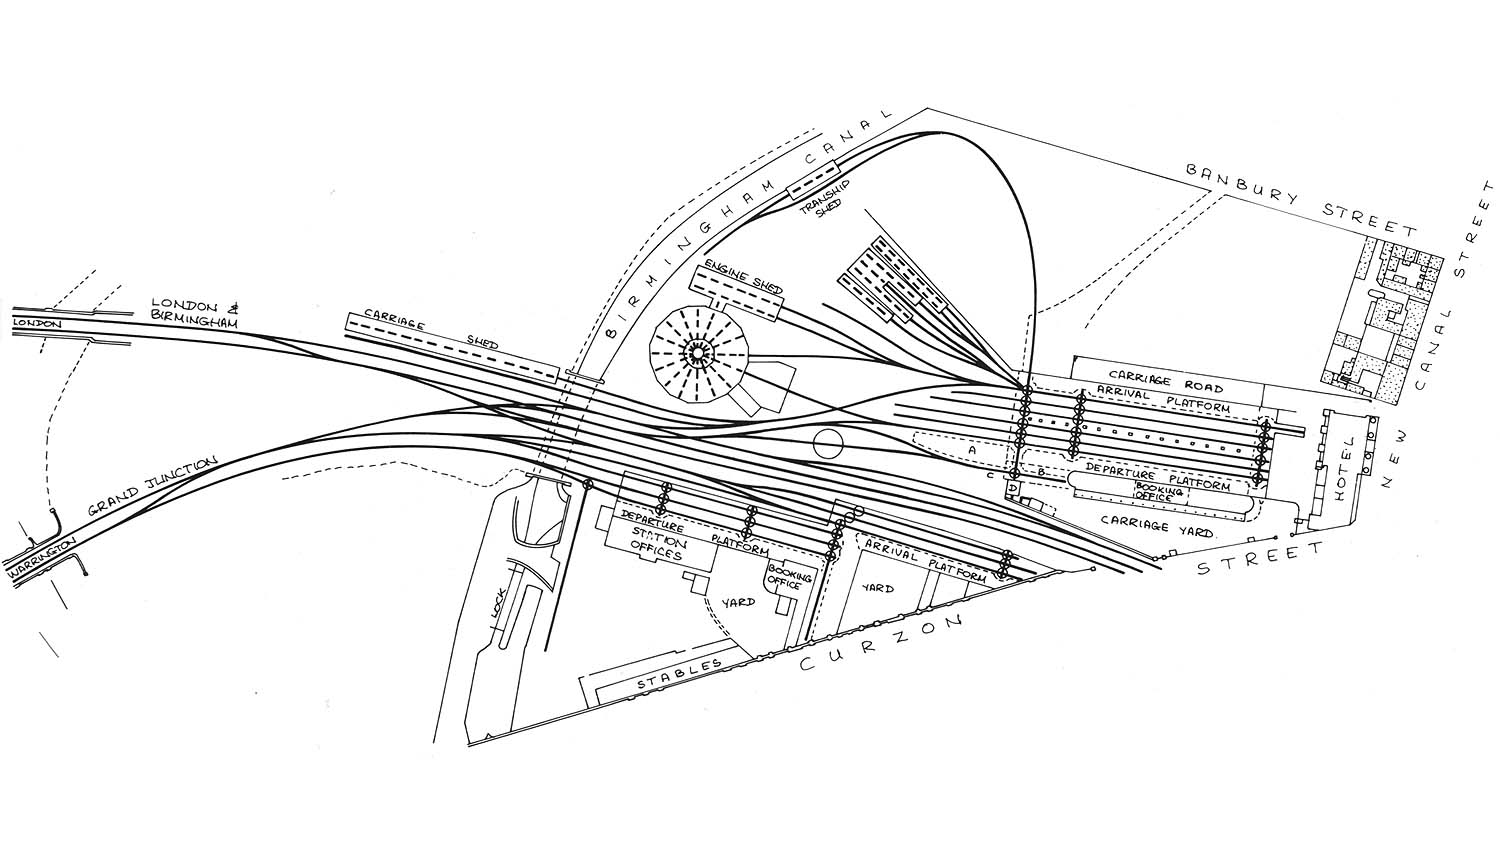 Curzon Street Shed Plan Of The Approach And Layout Of